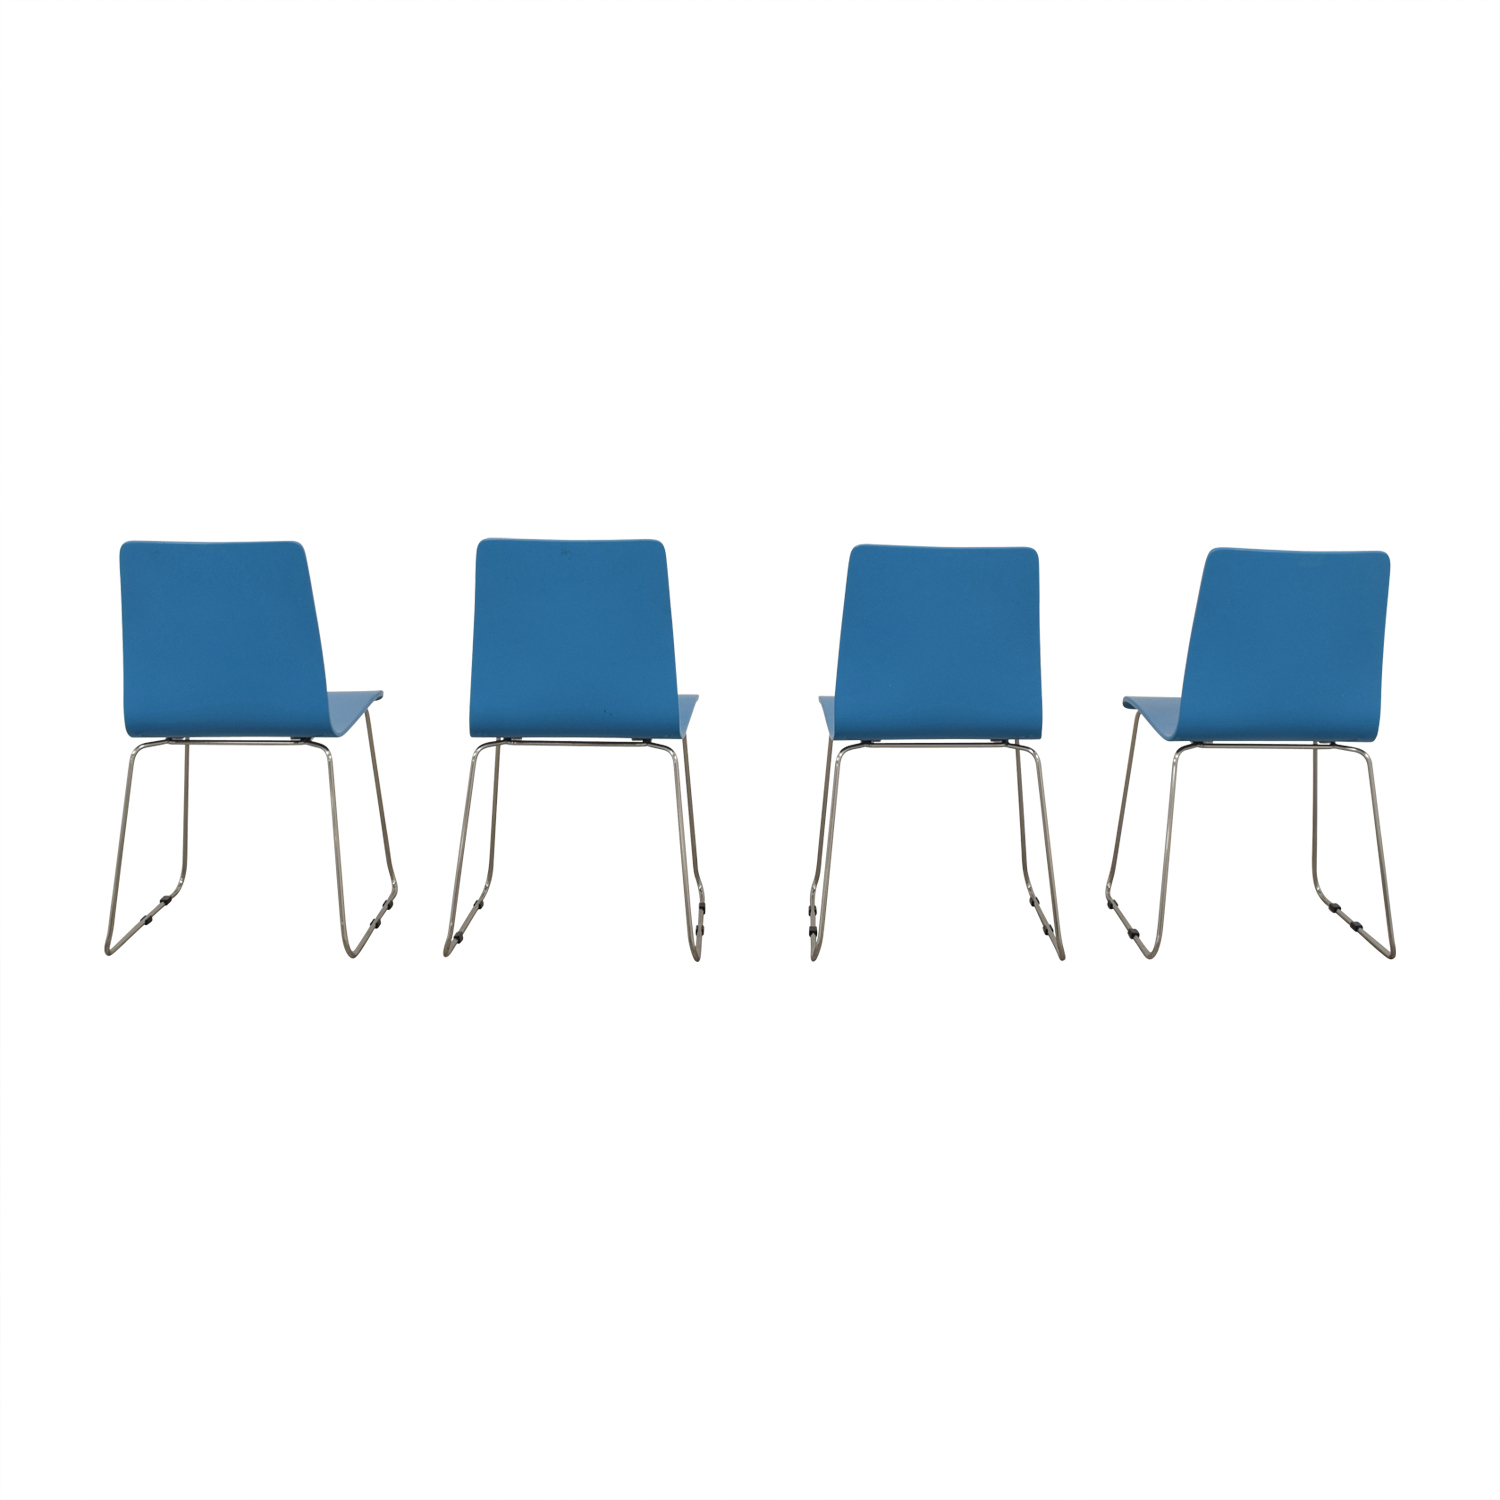 CB2 Turquoise Dining Chairs sale